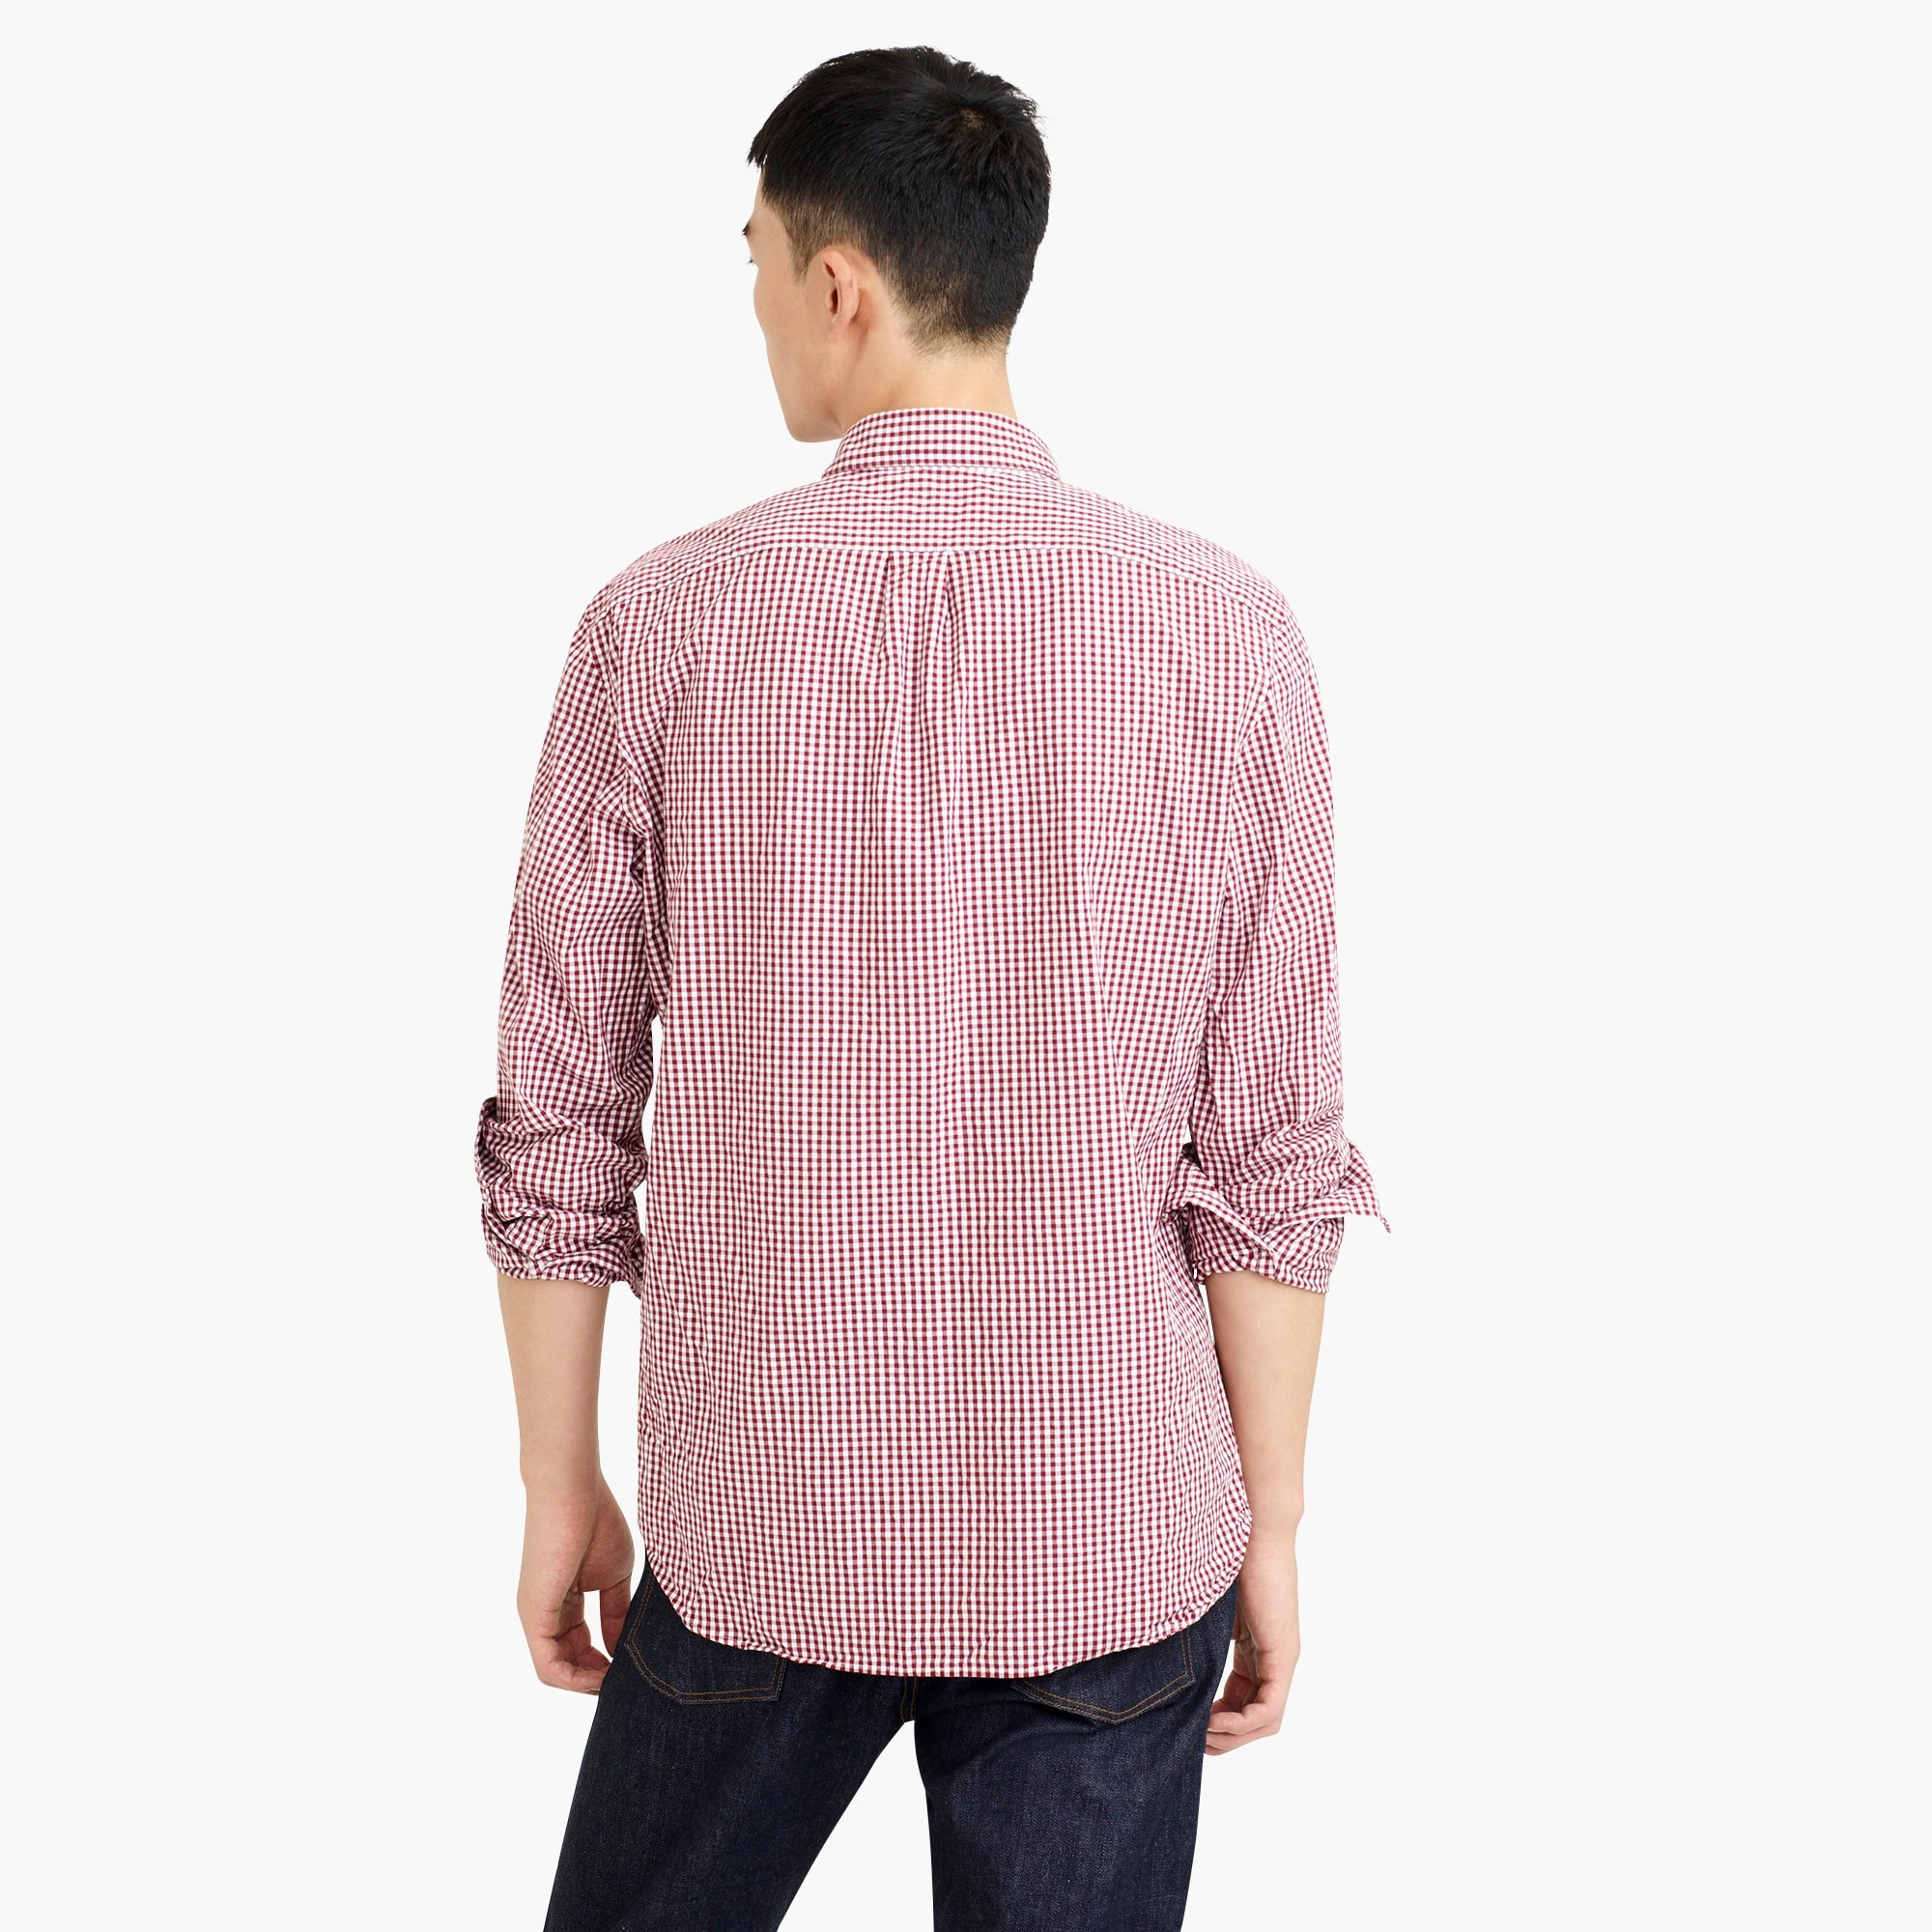 Image 3 for Tall stretch Secret Wash shirt in gingham poplin